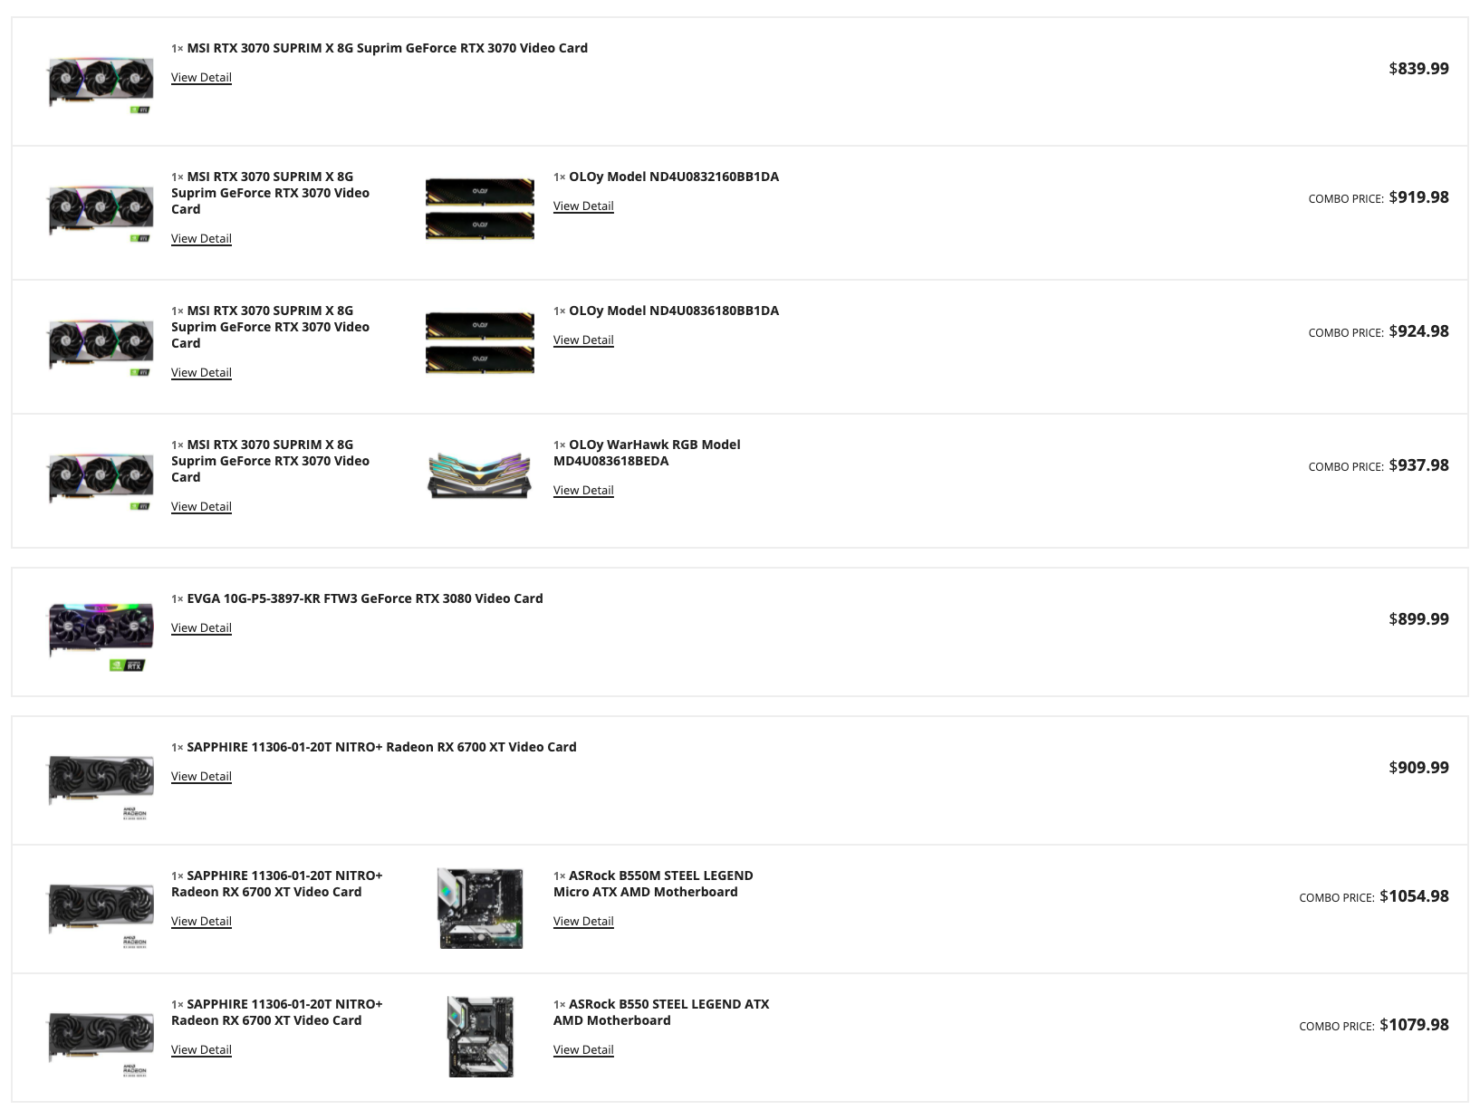 Selection of NVIDIA graphics cards in today